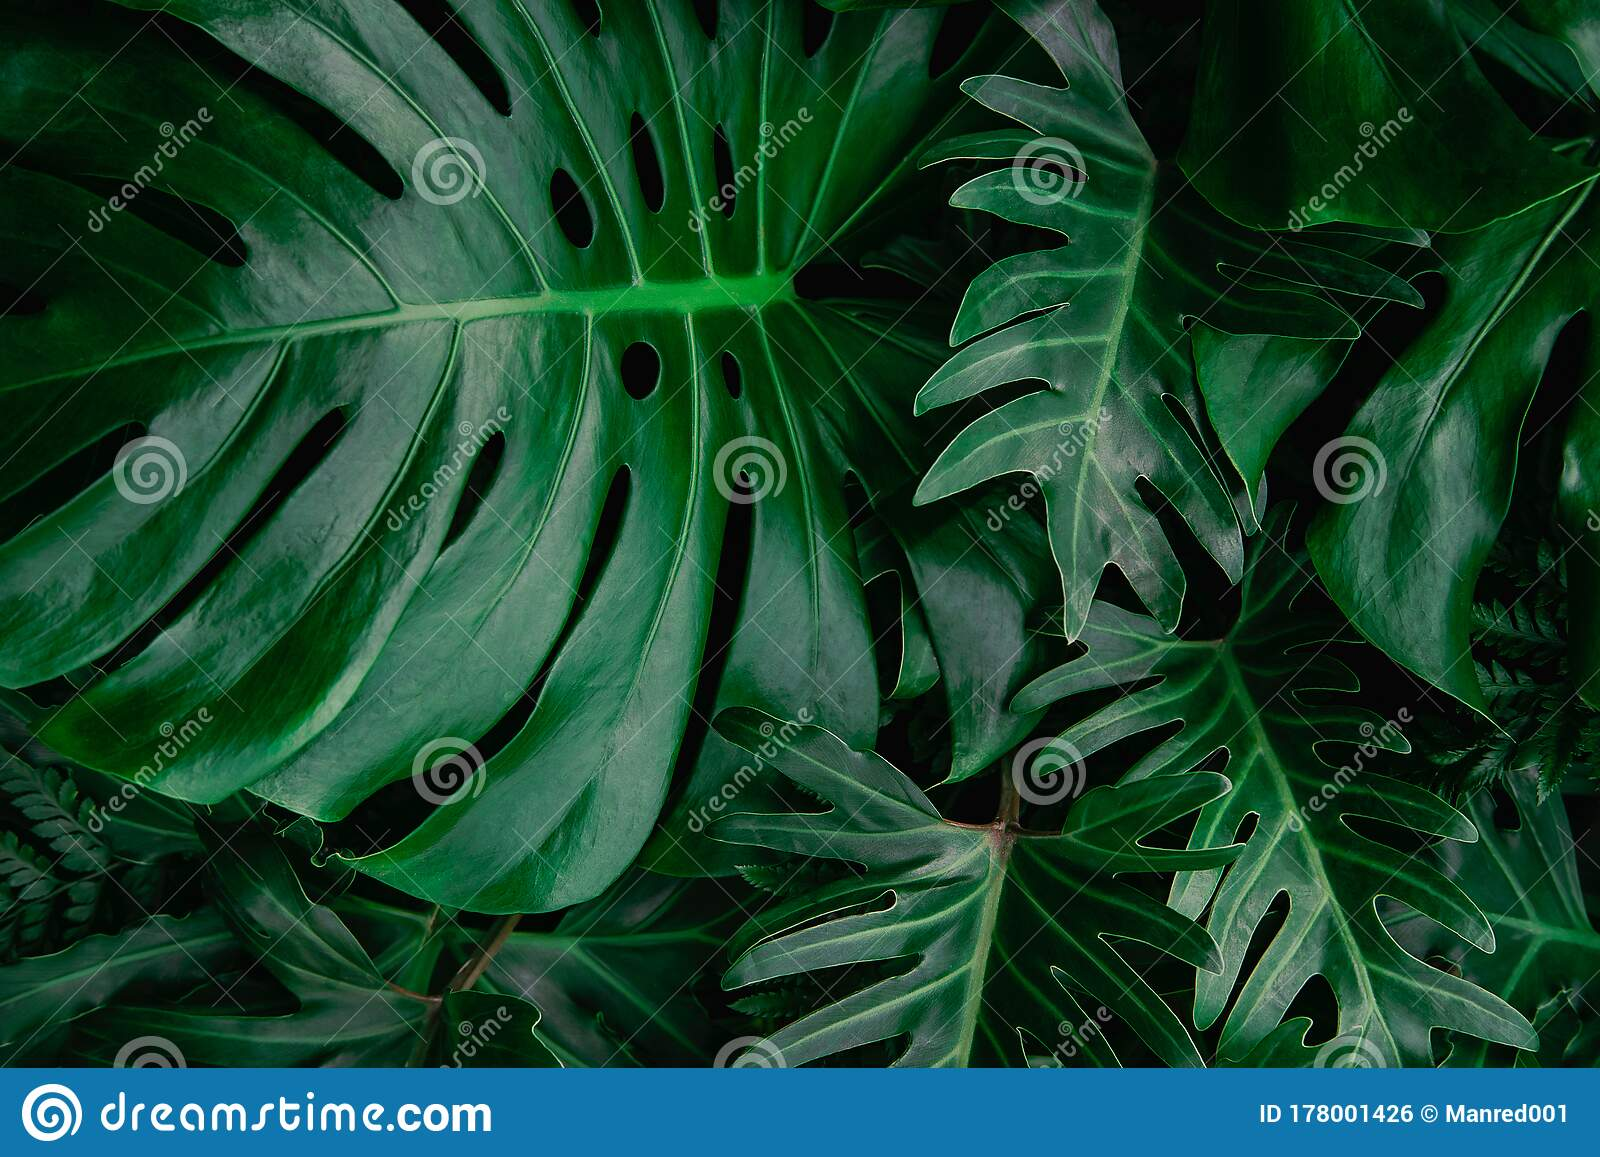 Tropical Leaves Abstract Green Leaves Texture Nature Background Stock Photo Image Of Backgrounds Garden 178001426 Learn how to design like a pro with fonts, colour and layout. tropical leaves abstract green leaves texture nature background stock photo image of backgrounds garden 178001426